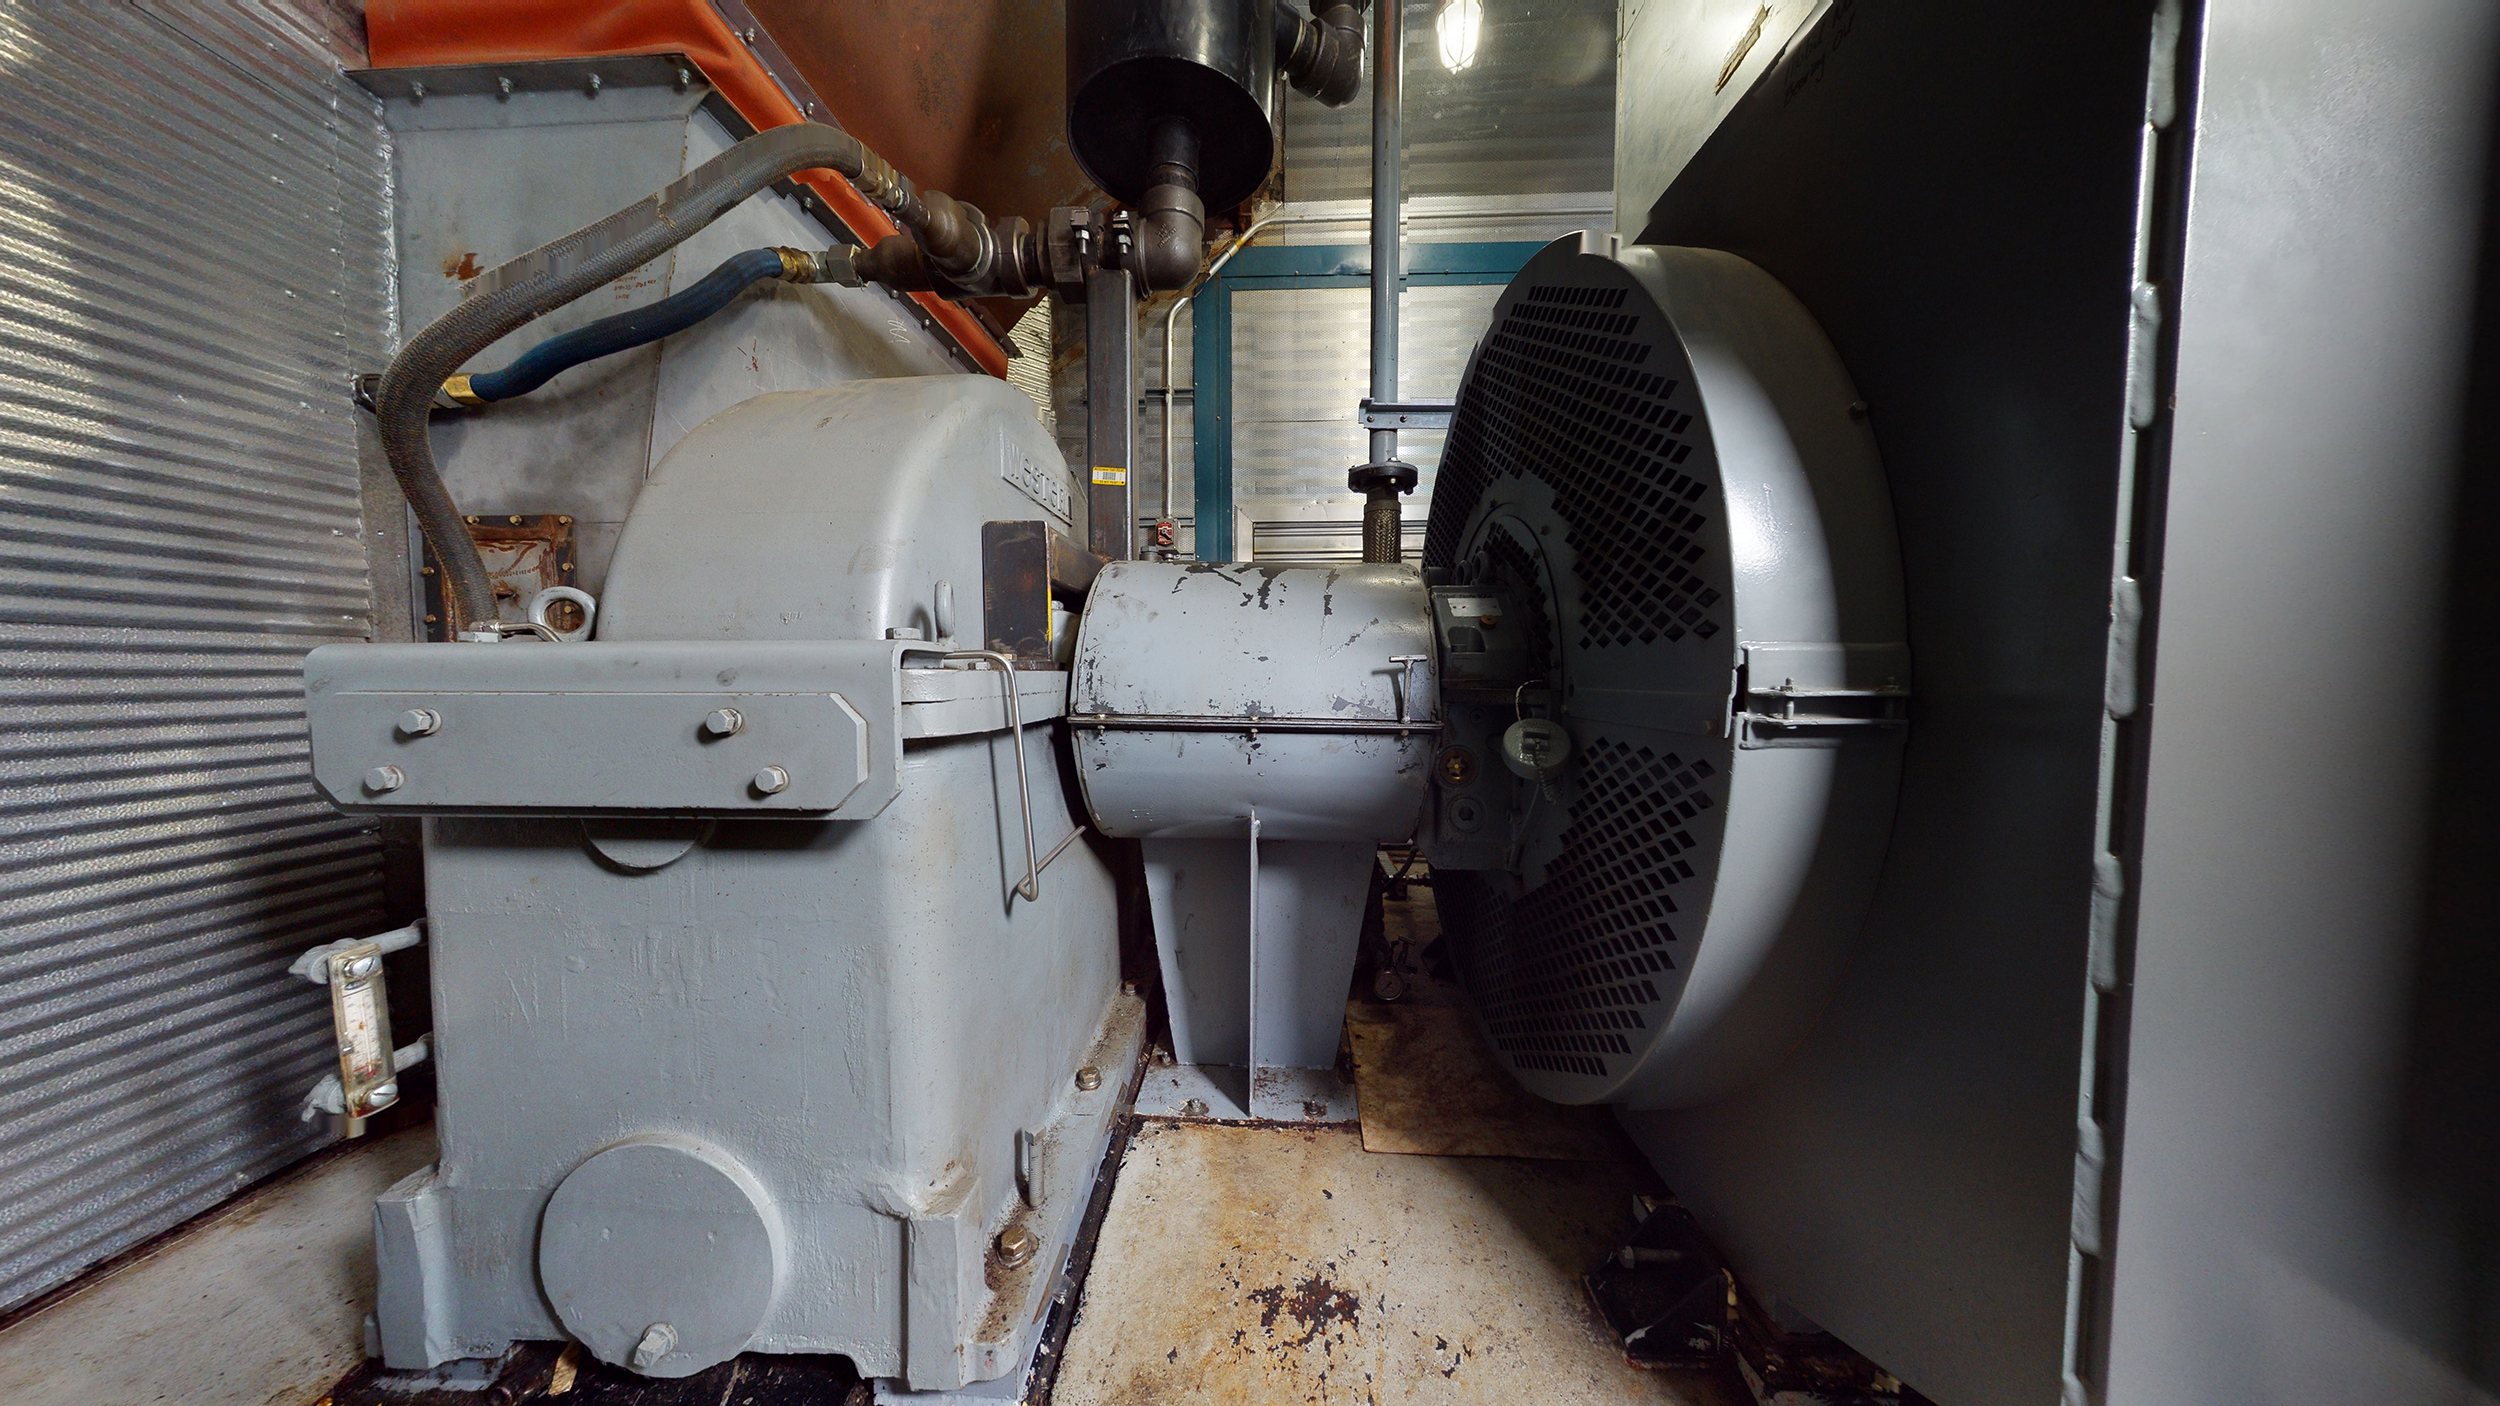 Interior 6 - gearbox & generator end - Used 2500 kW / 2 MW Allison Natural Gas Turbine Generator Package for sale in Alberta